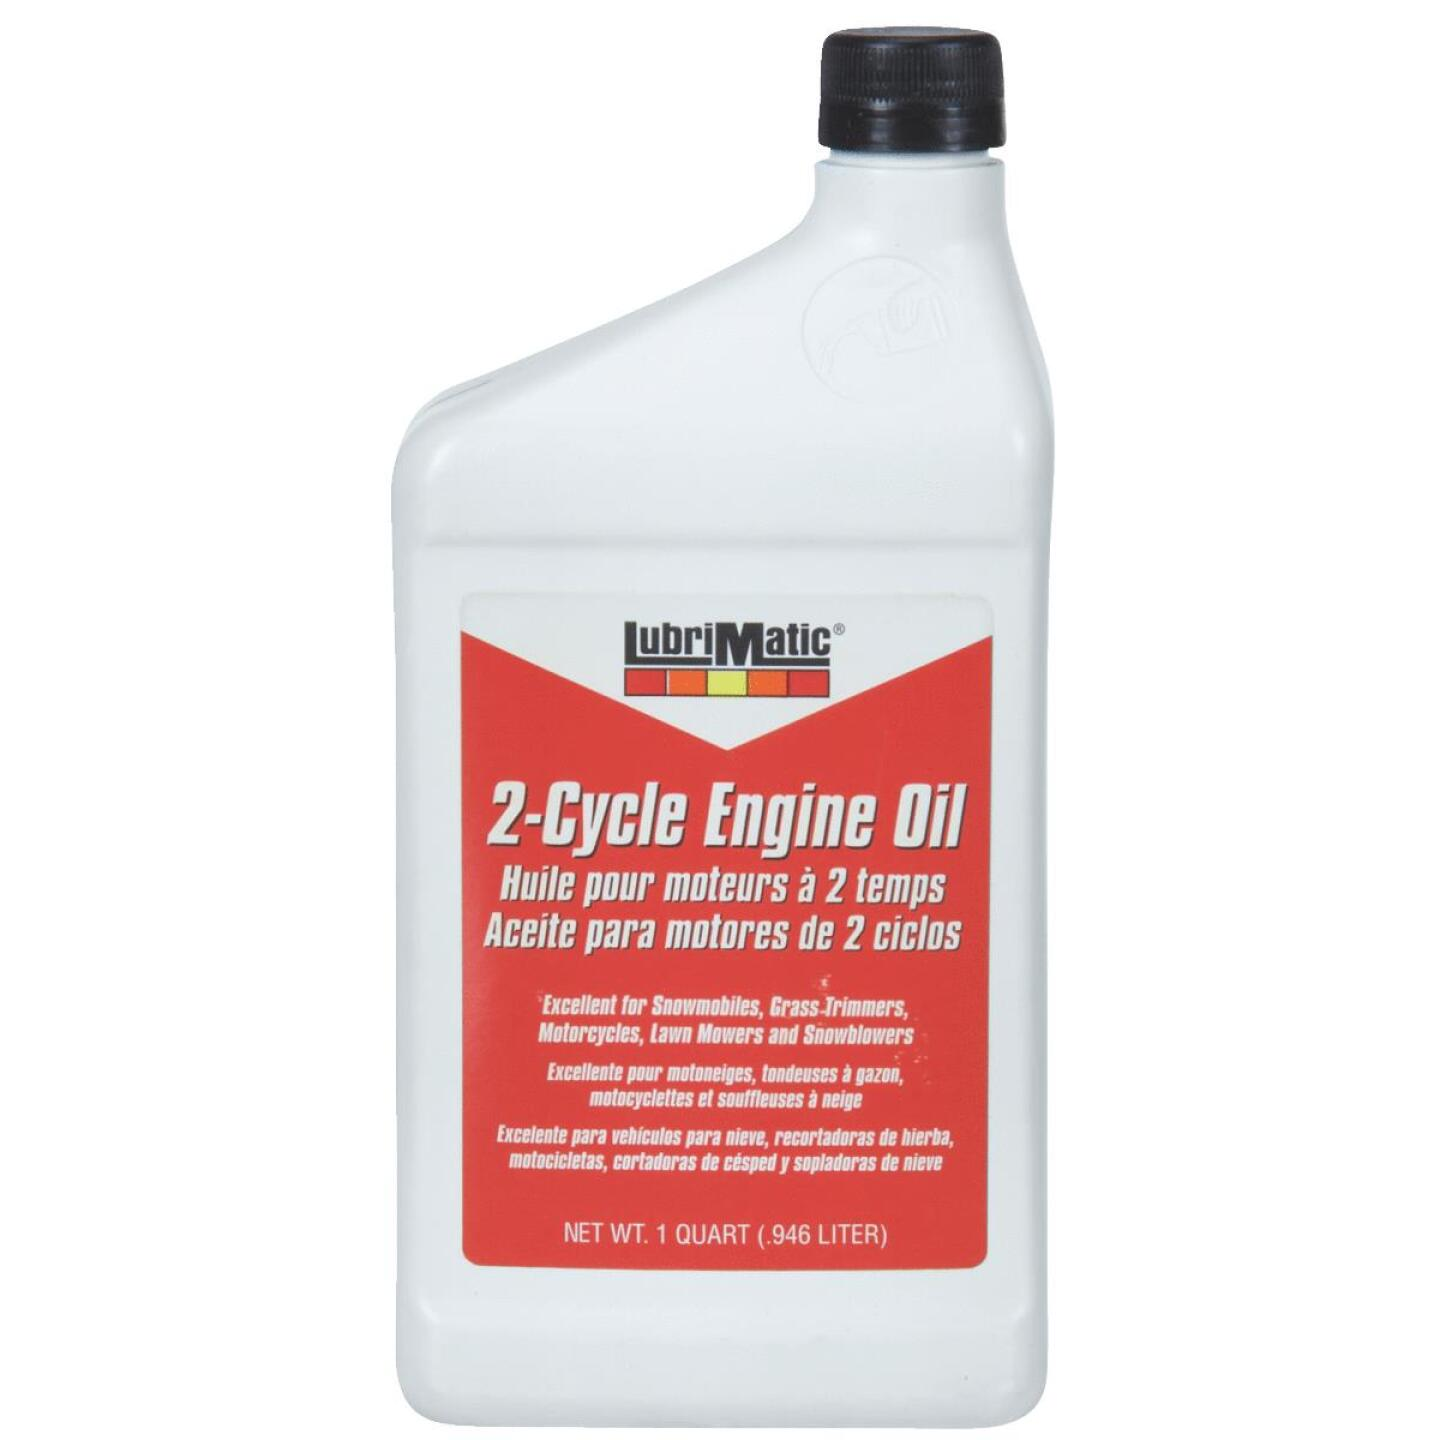 LubriMatic 1 Qt. Air Cooled 2-Cycle Motor Oil Image 1